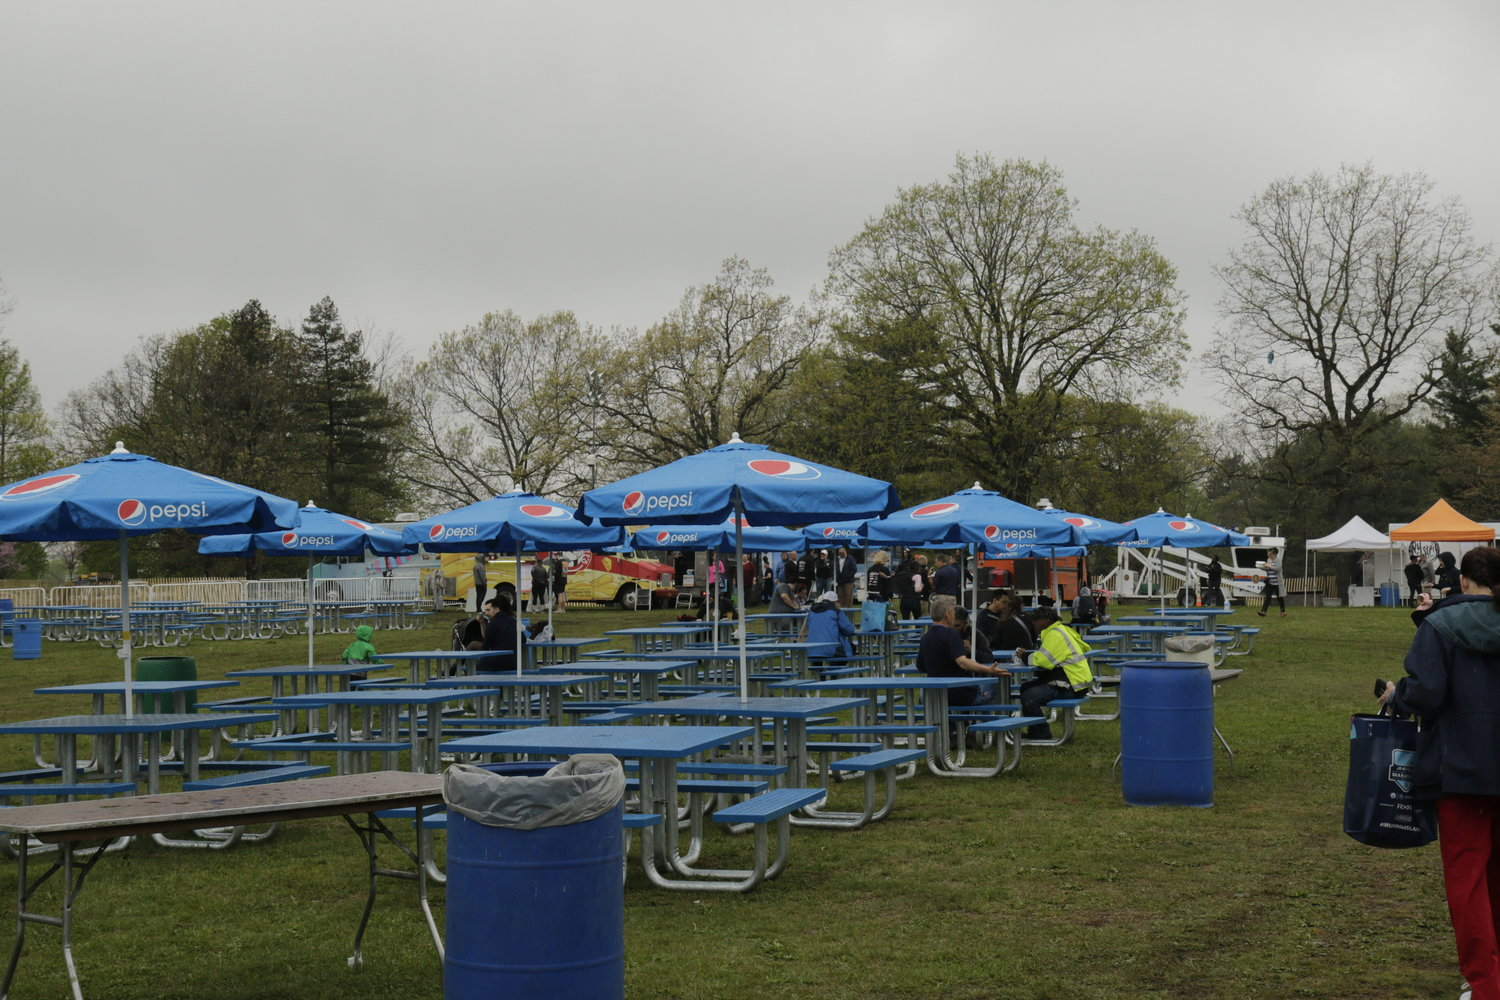 The picnic area at Eisenhower Park's Field 5 during the festival.